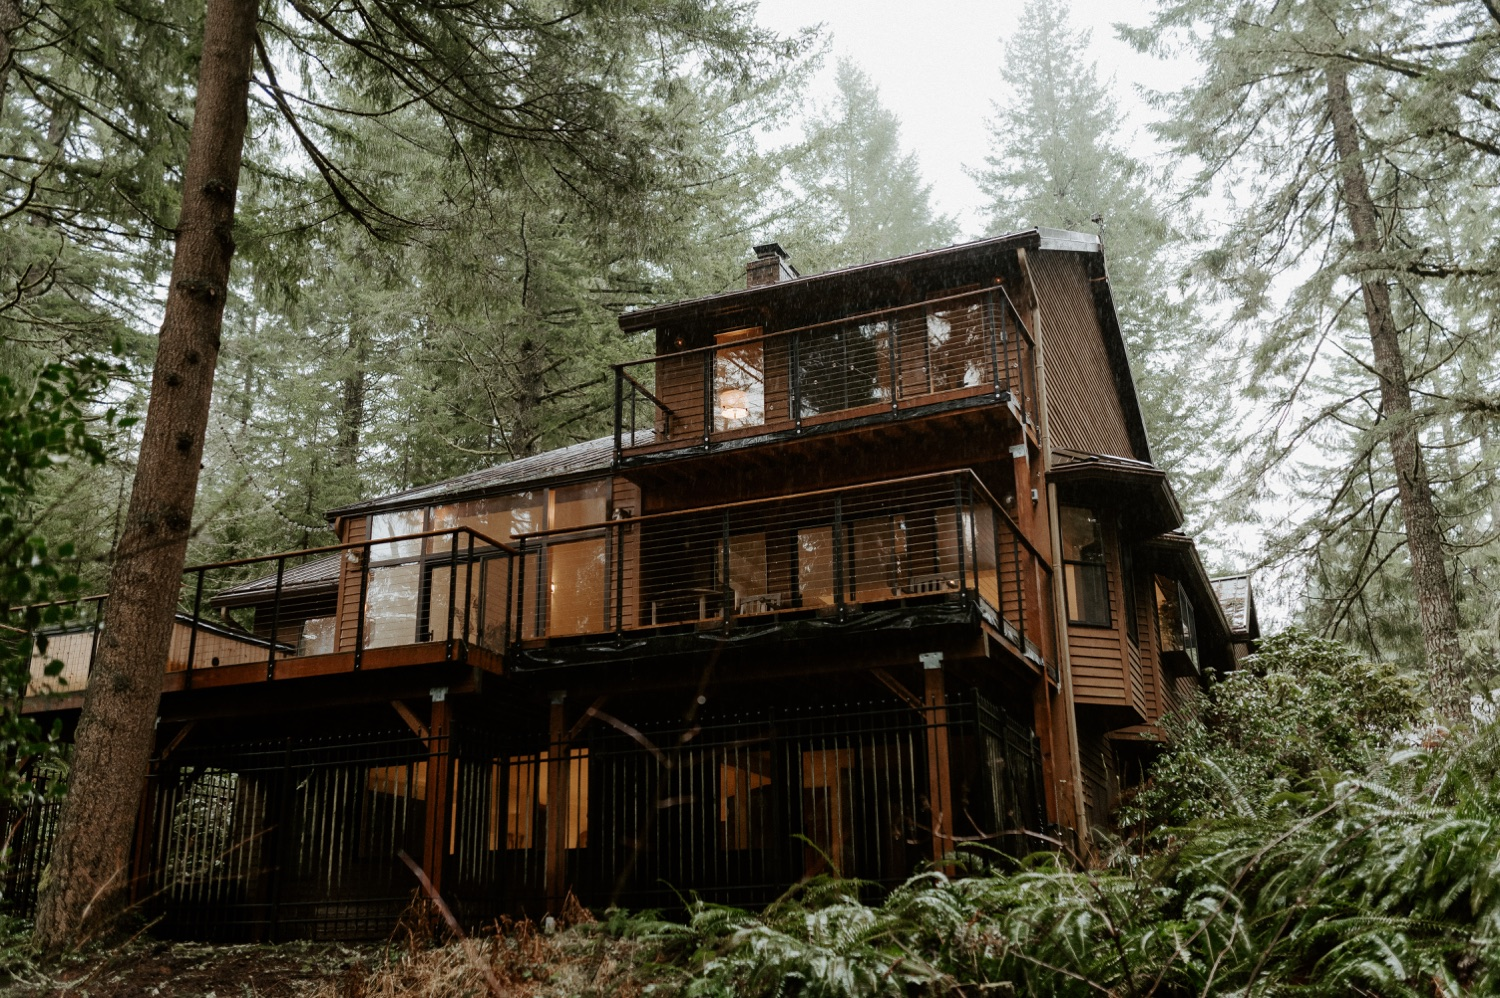 The Woodlands House Sandy Oregon Elopement Portland Elopement Photographer PNW Adventurous Elopement Anais Possamai Photography 001